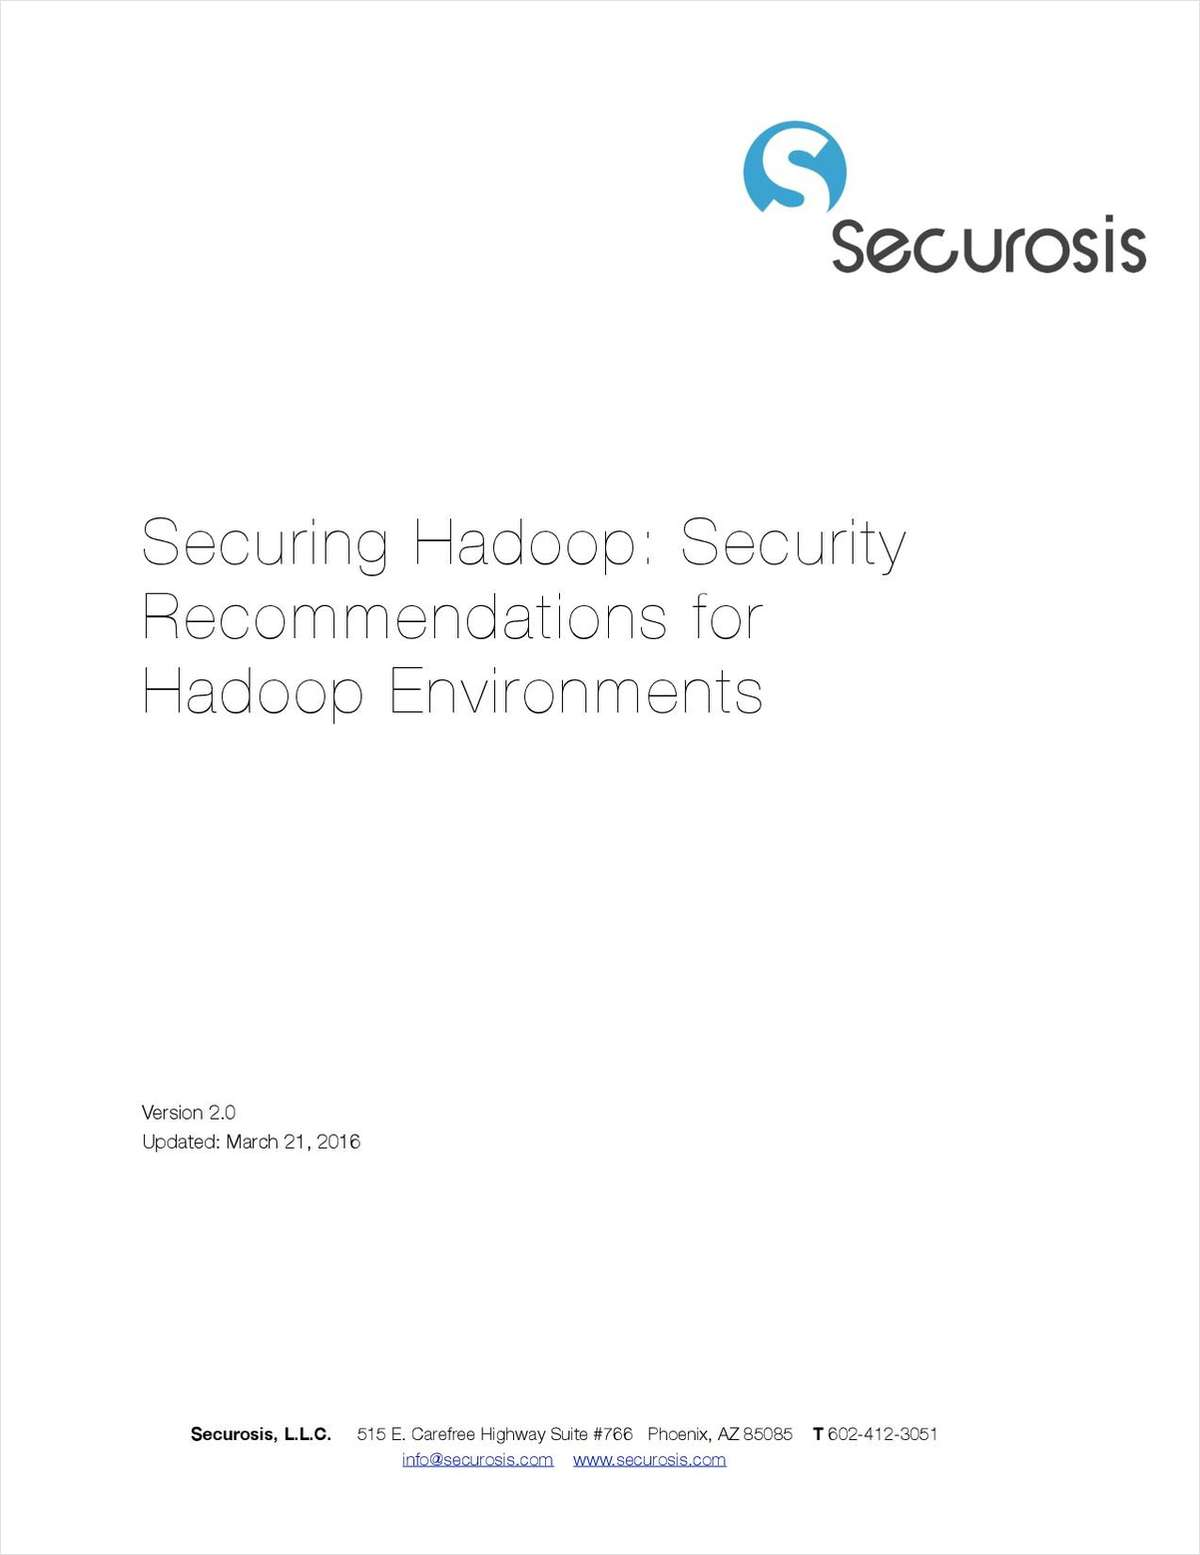 Securosis: Securing Hadoop: Security Recommendations for Hadoop Environments